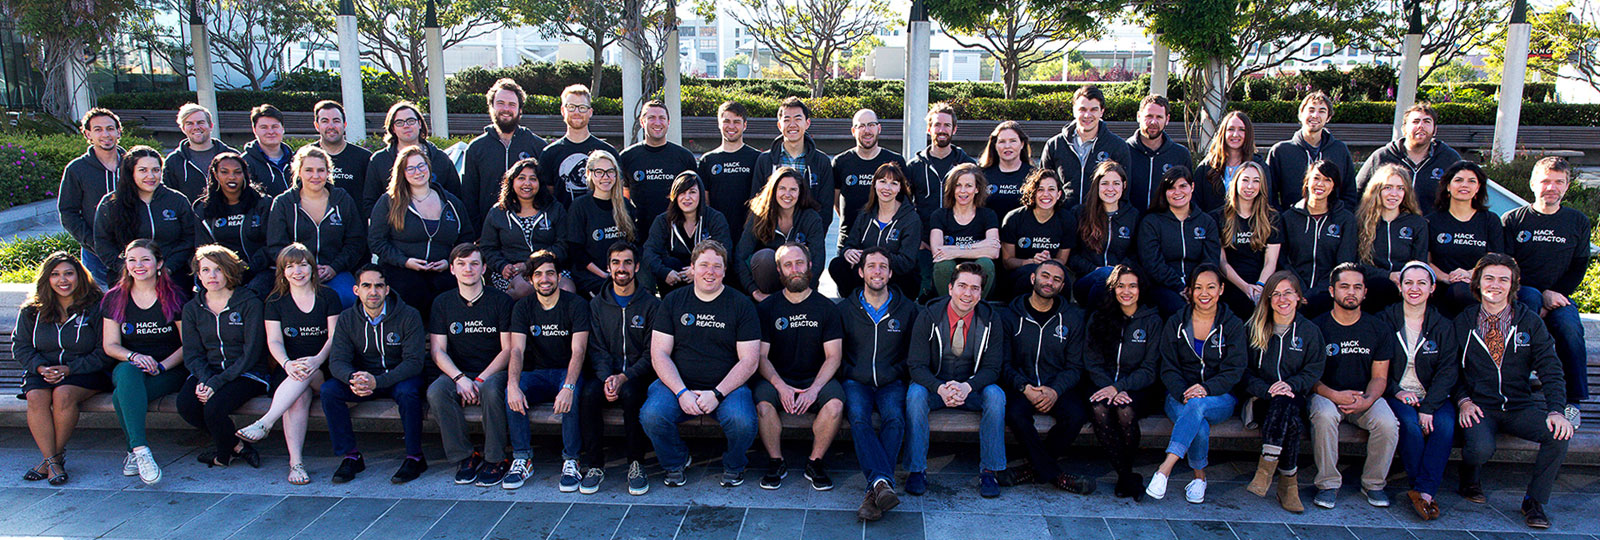 Hack Reactor Staff group image